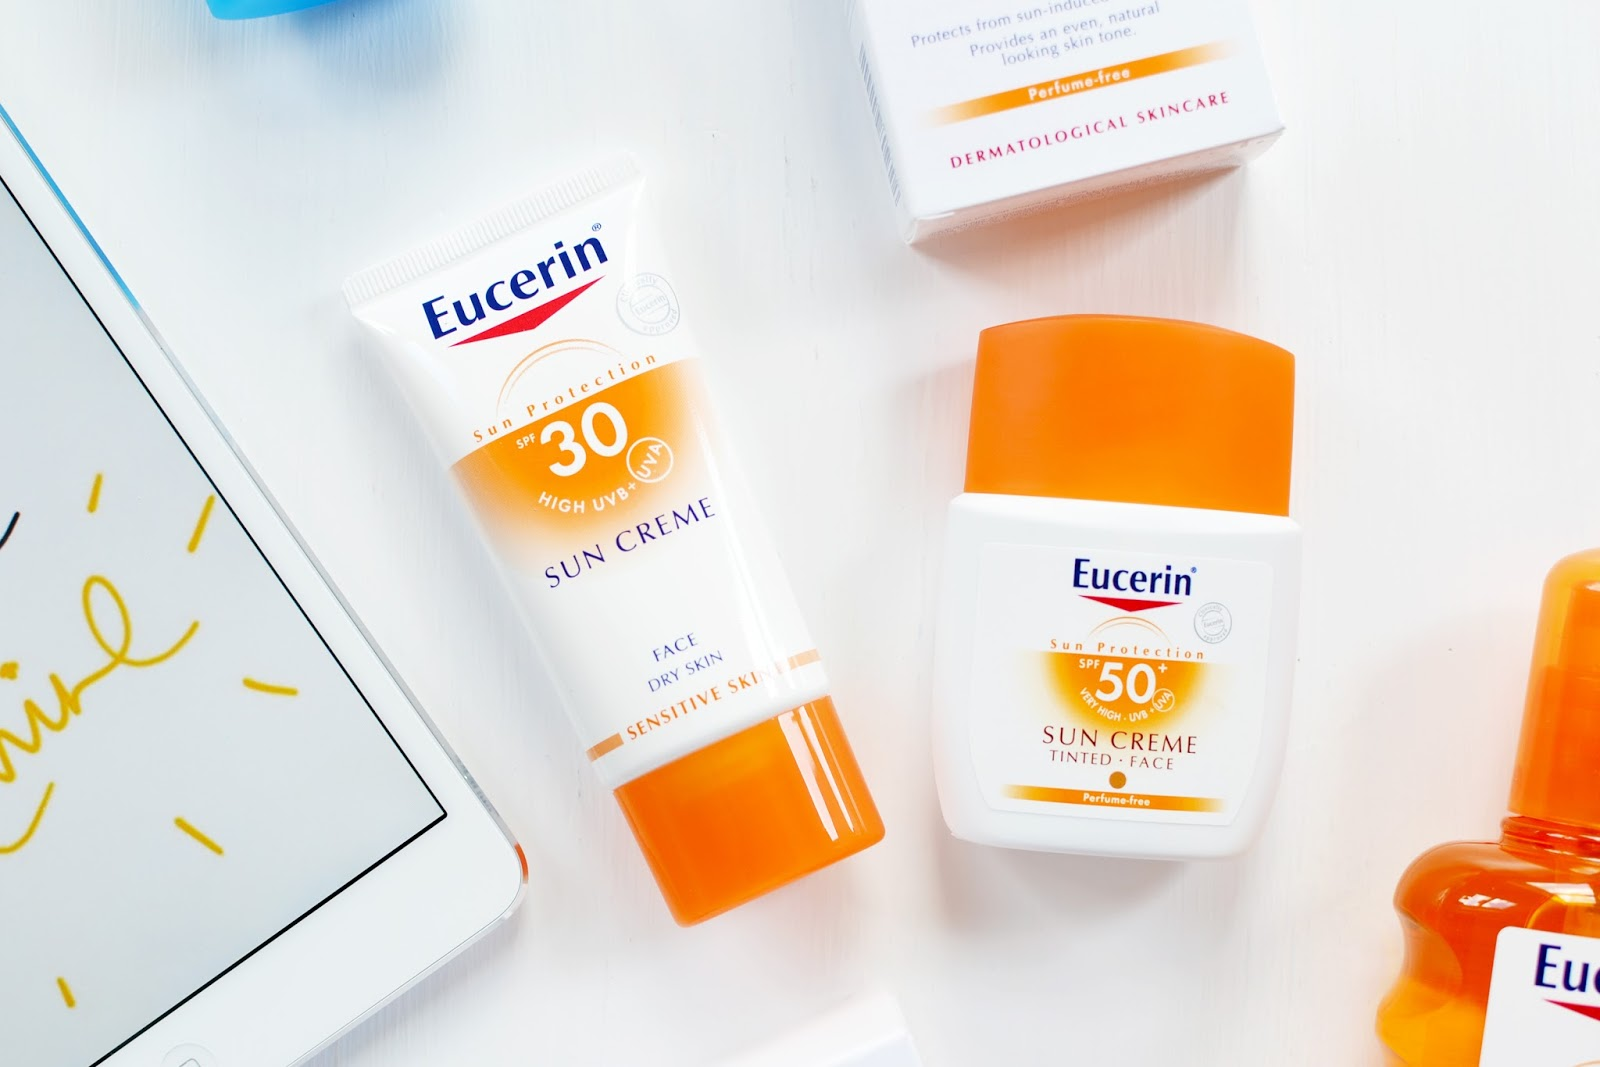 eurecin sun care products